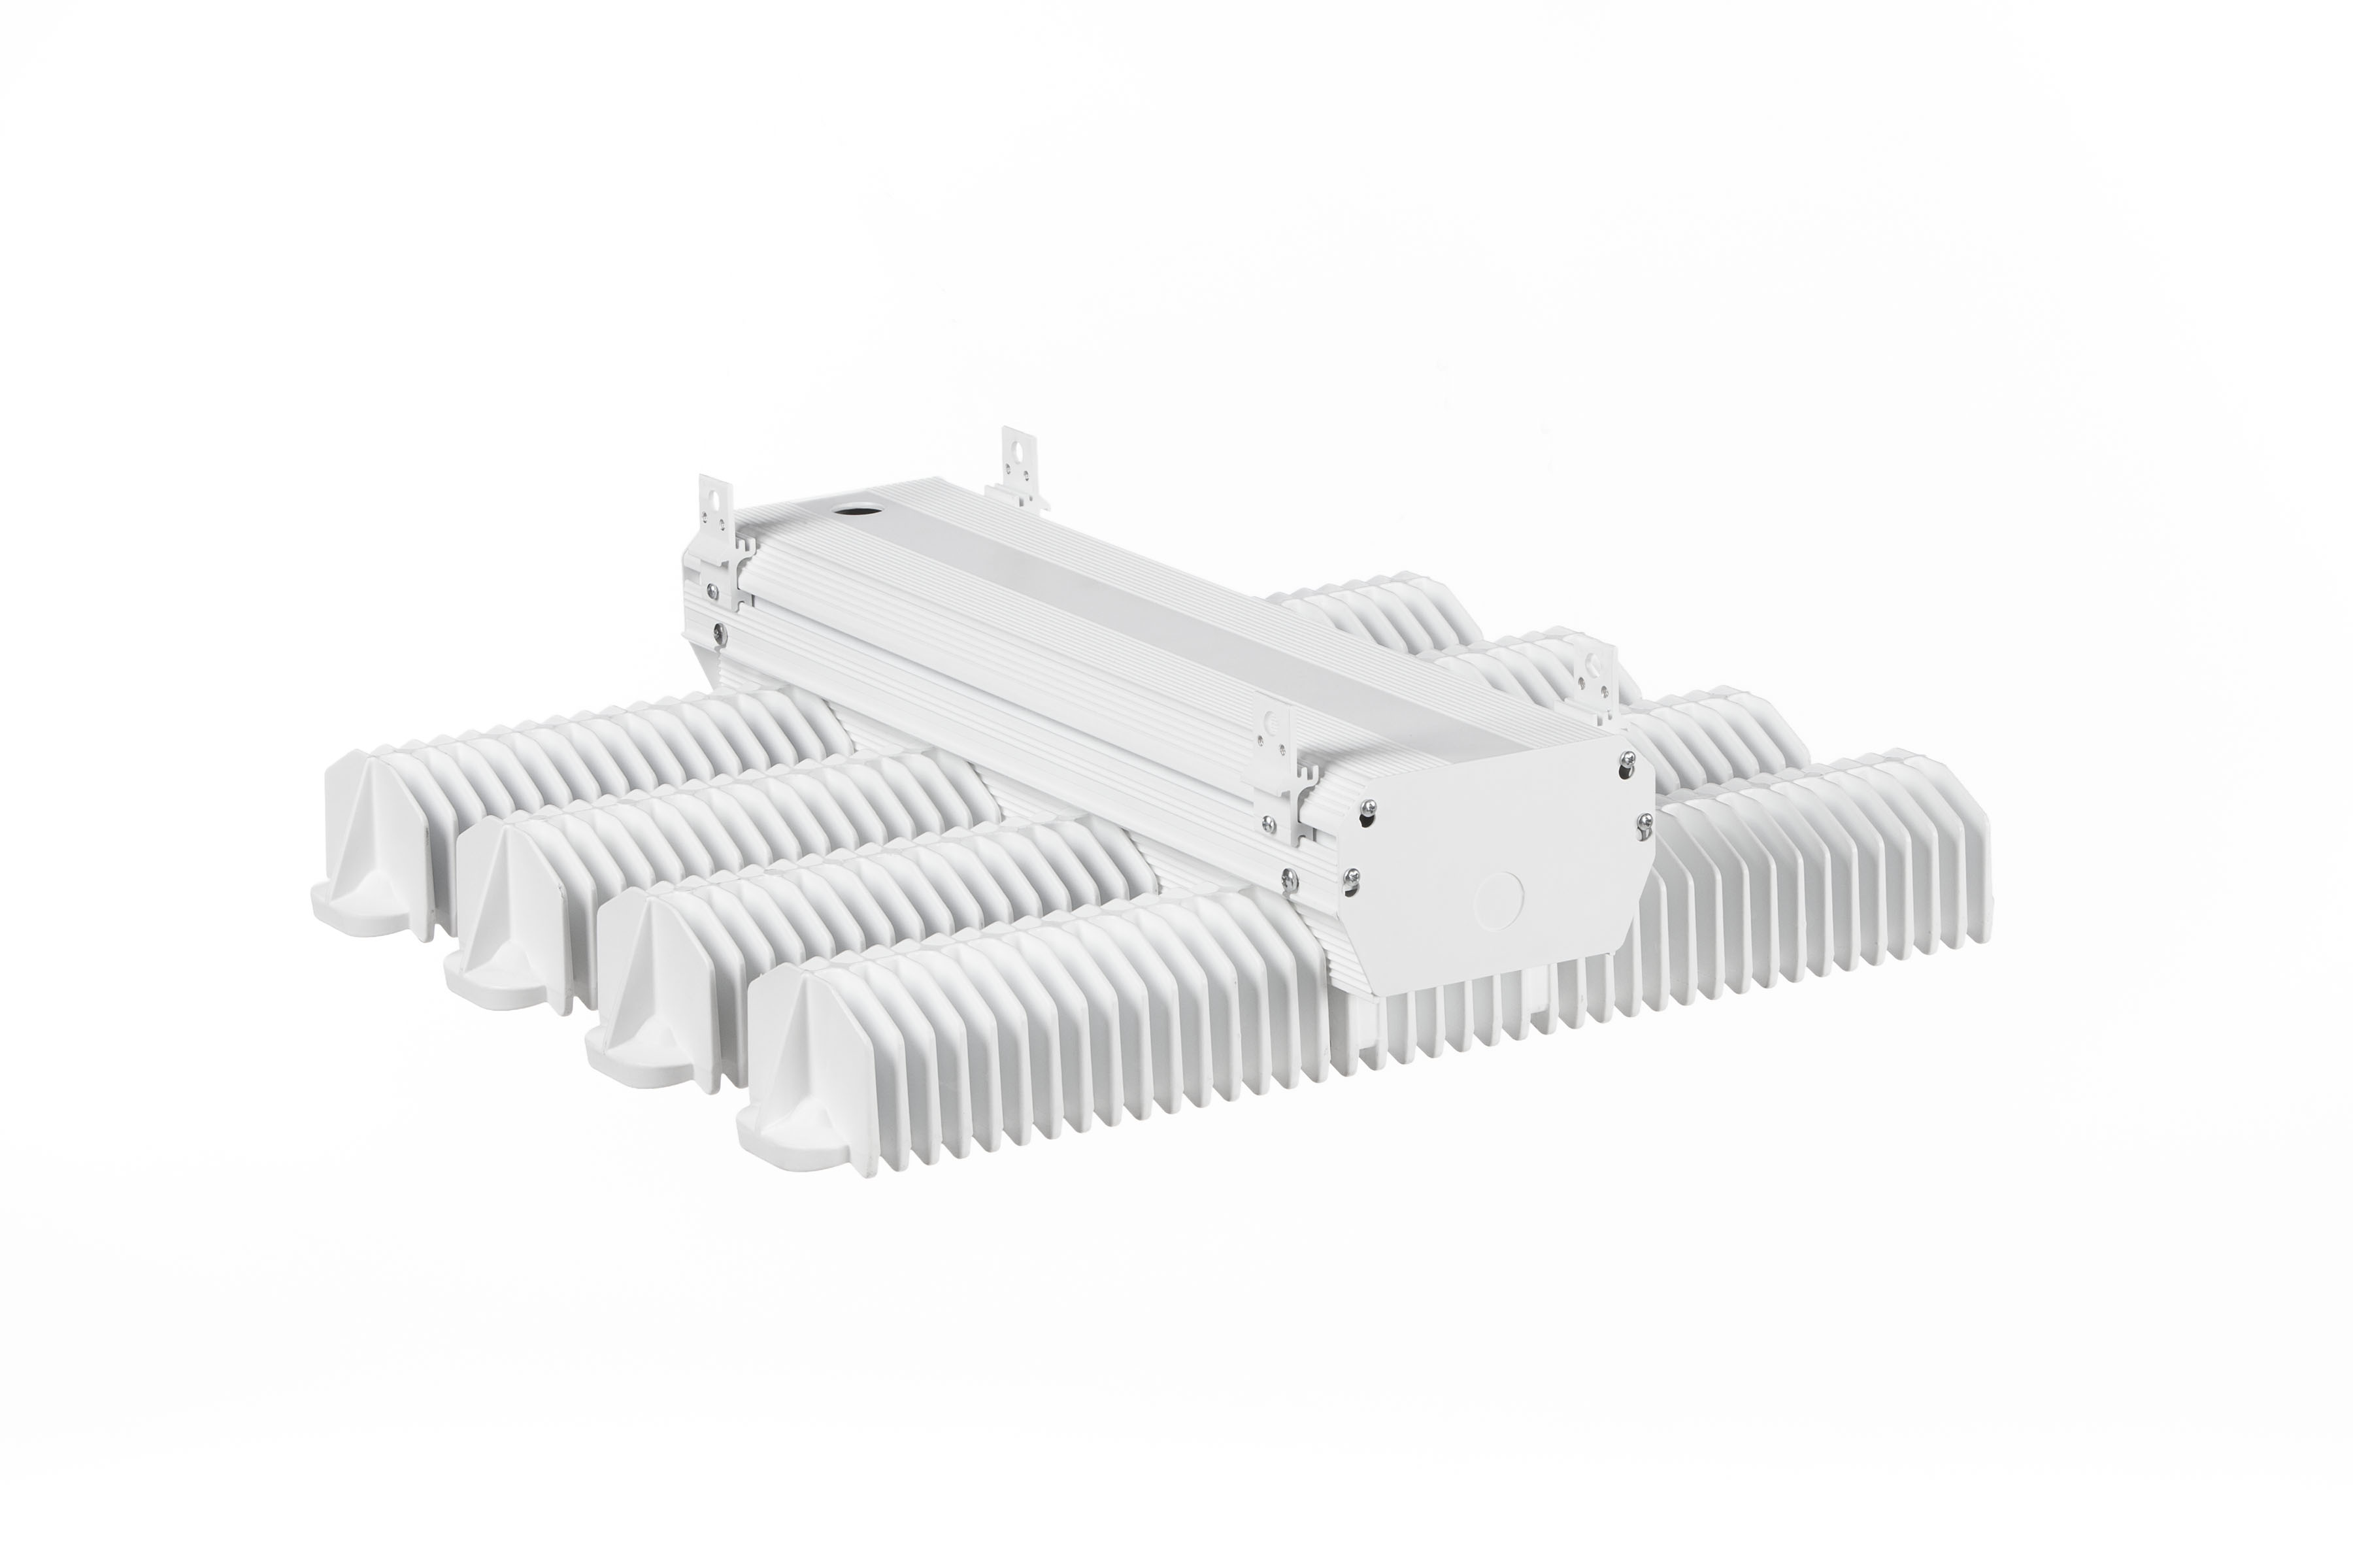 ge lighting earns recognition for three fixture designs in next generation luminaires competition ge news